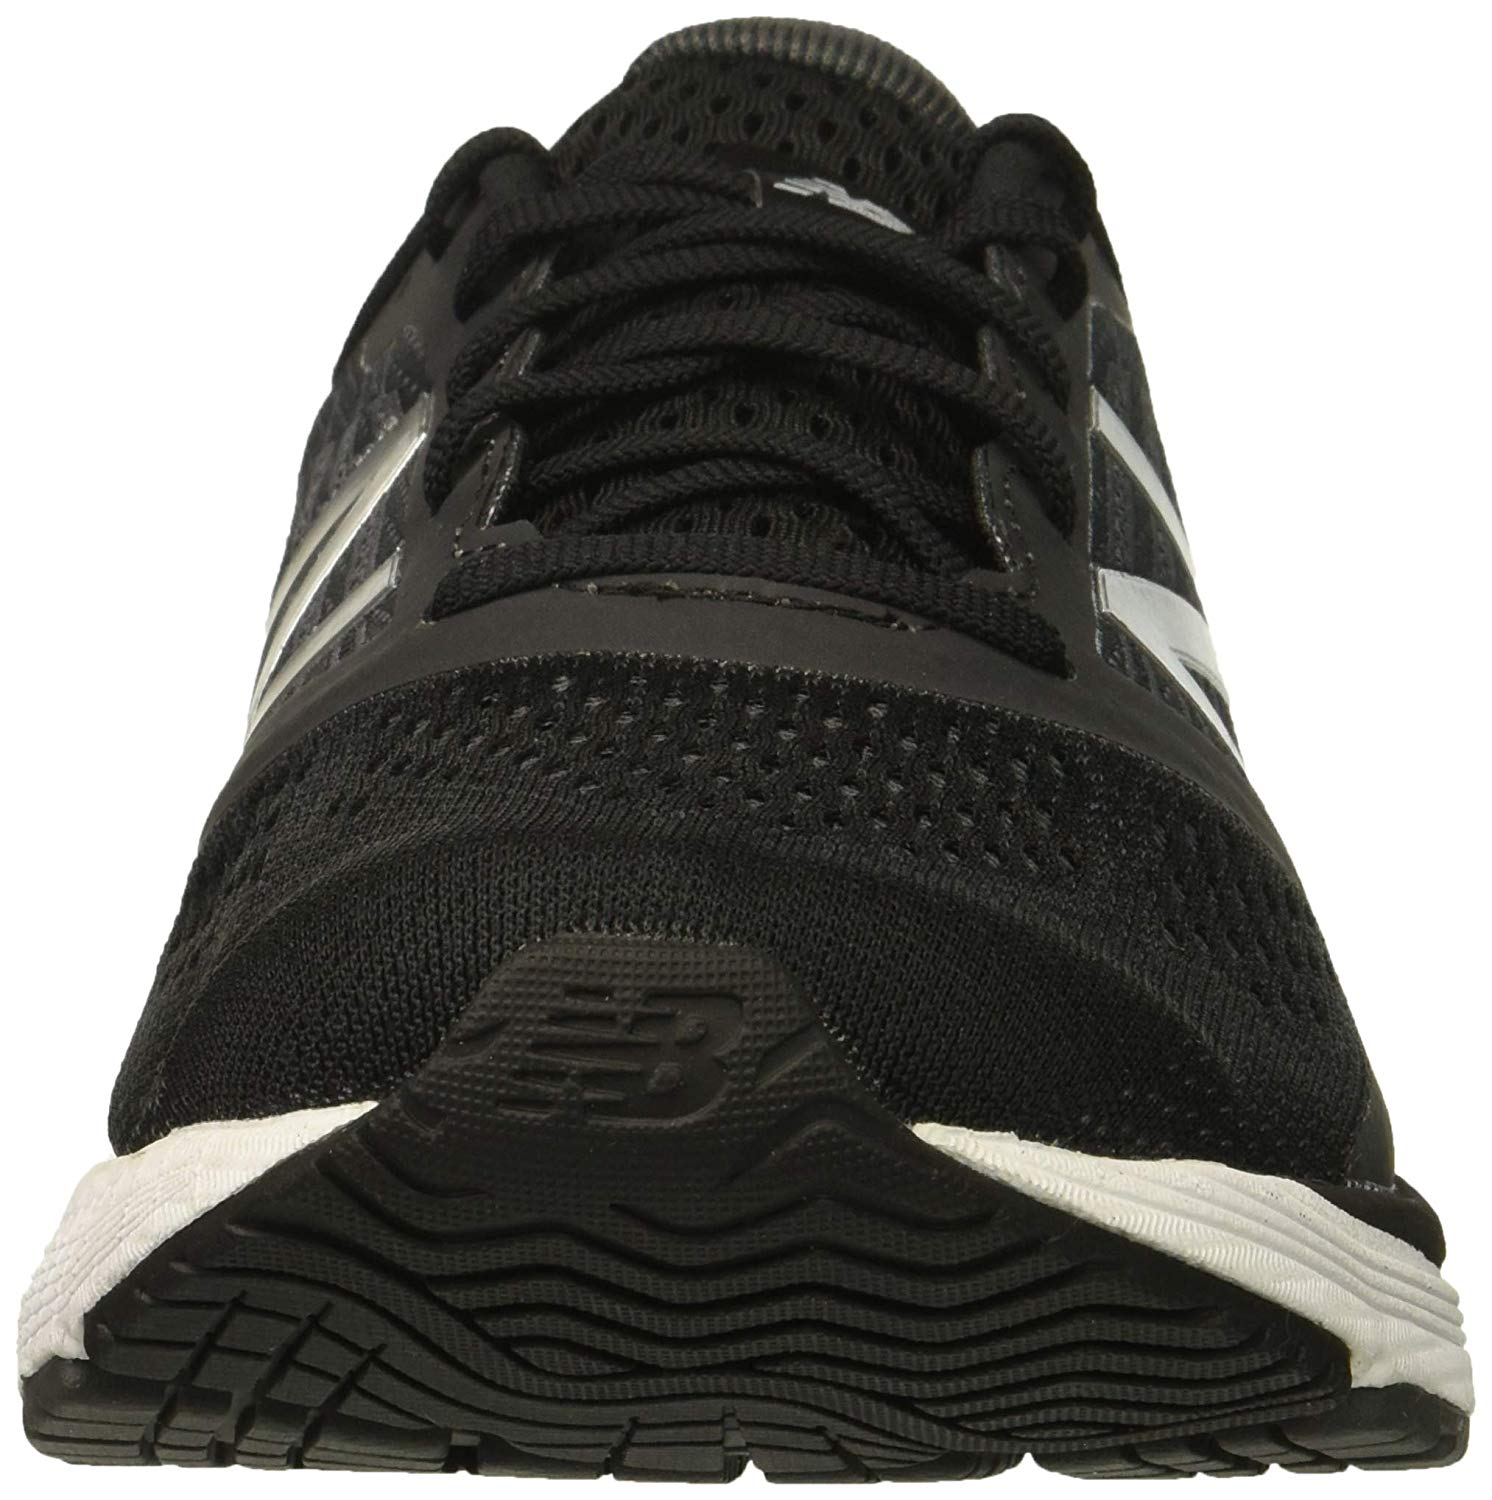 Kids New Balance Girls 860v9 Low Top Lace Up Running Sneaker